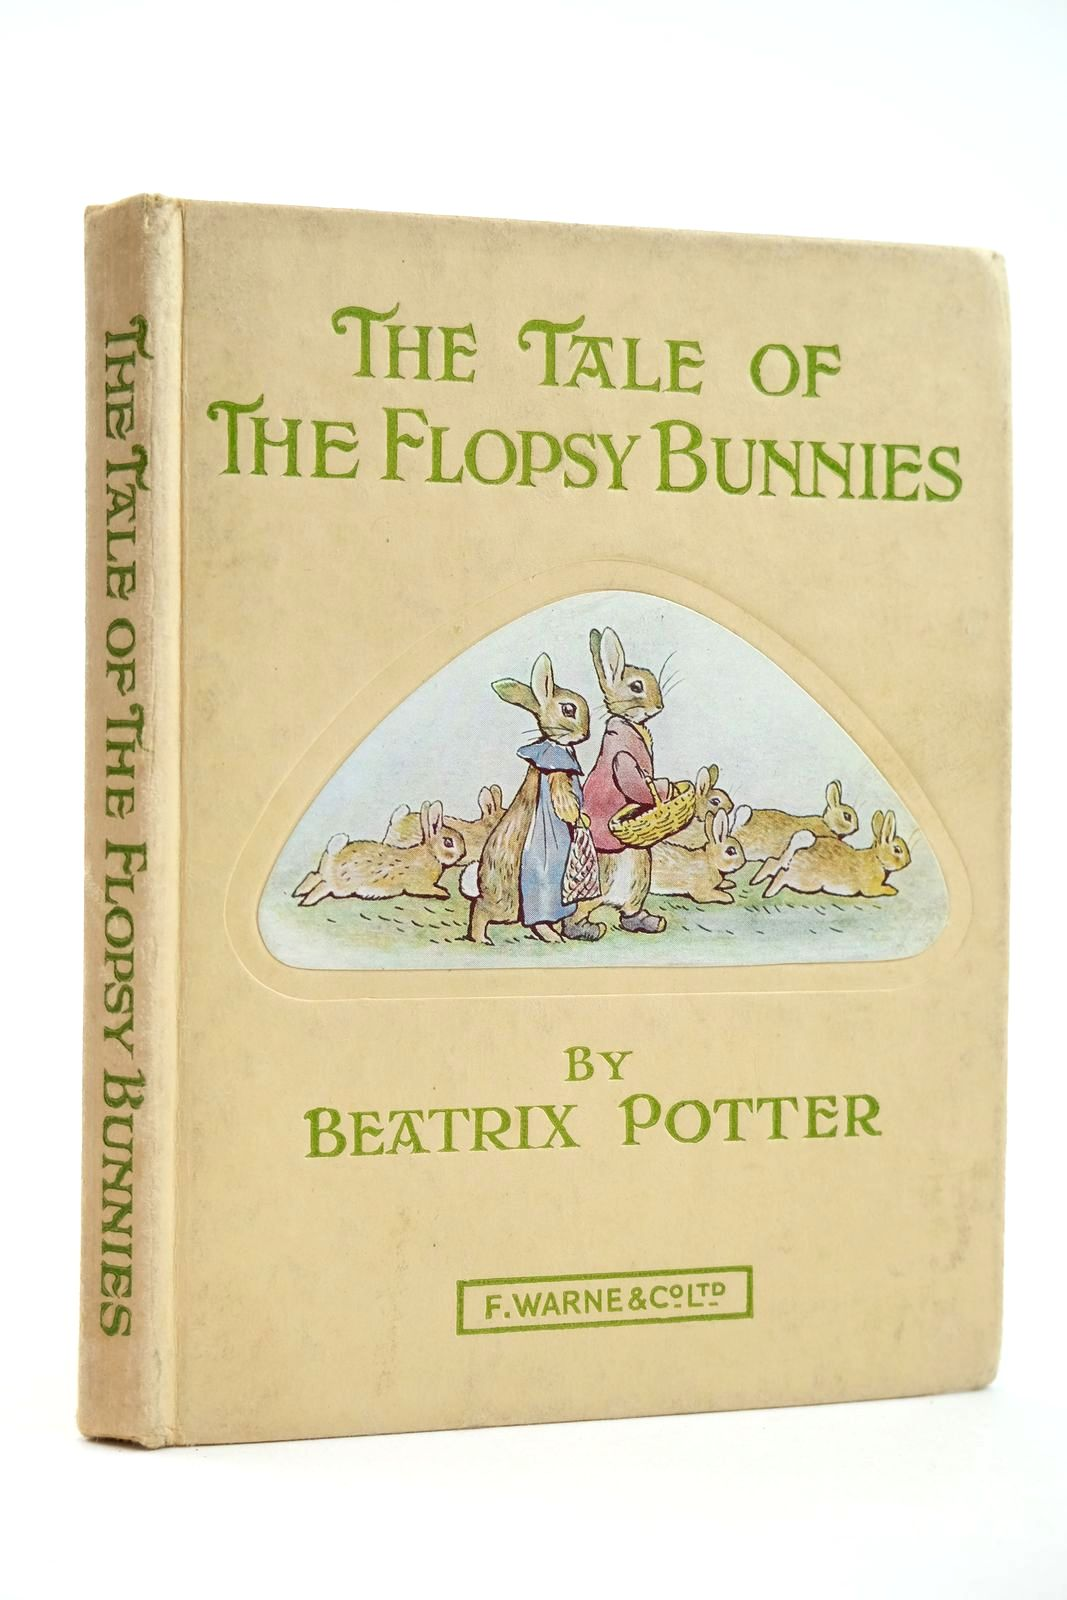 Photo of THE TALE OF THE FLOPSY BUNNIES written by Potter, Beatrix illustrated by Potter, Beatrix published by Frederick Warne & Co Ltd. (STOCK CODE: 2131892)  for sale by Stella & Rose's Books